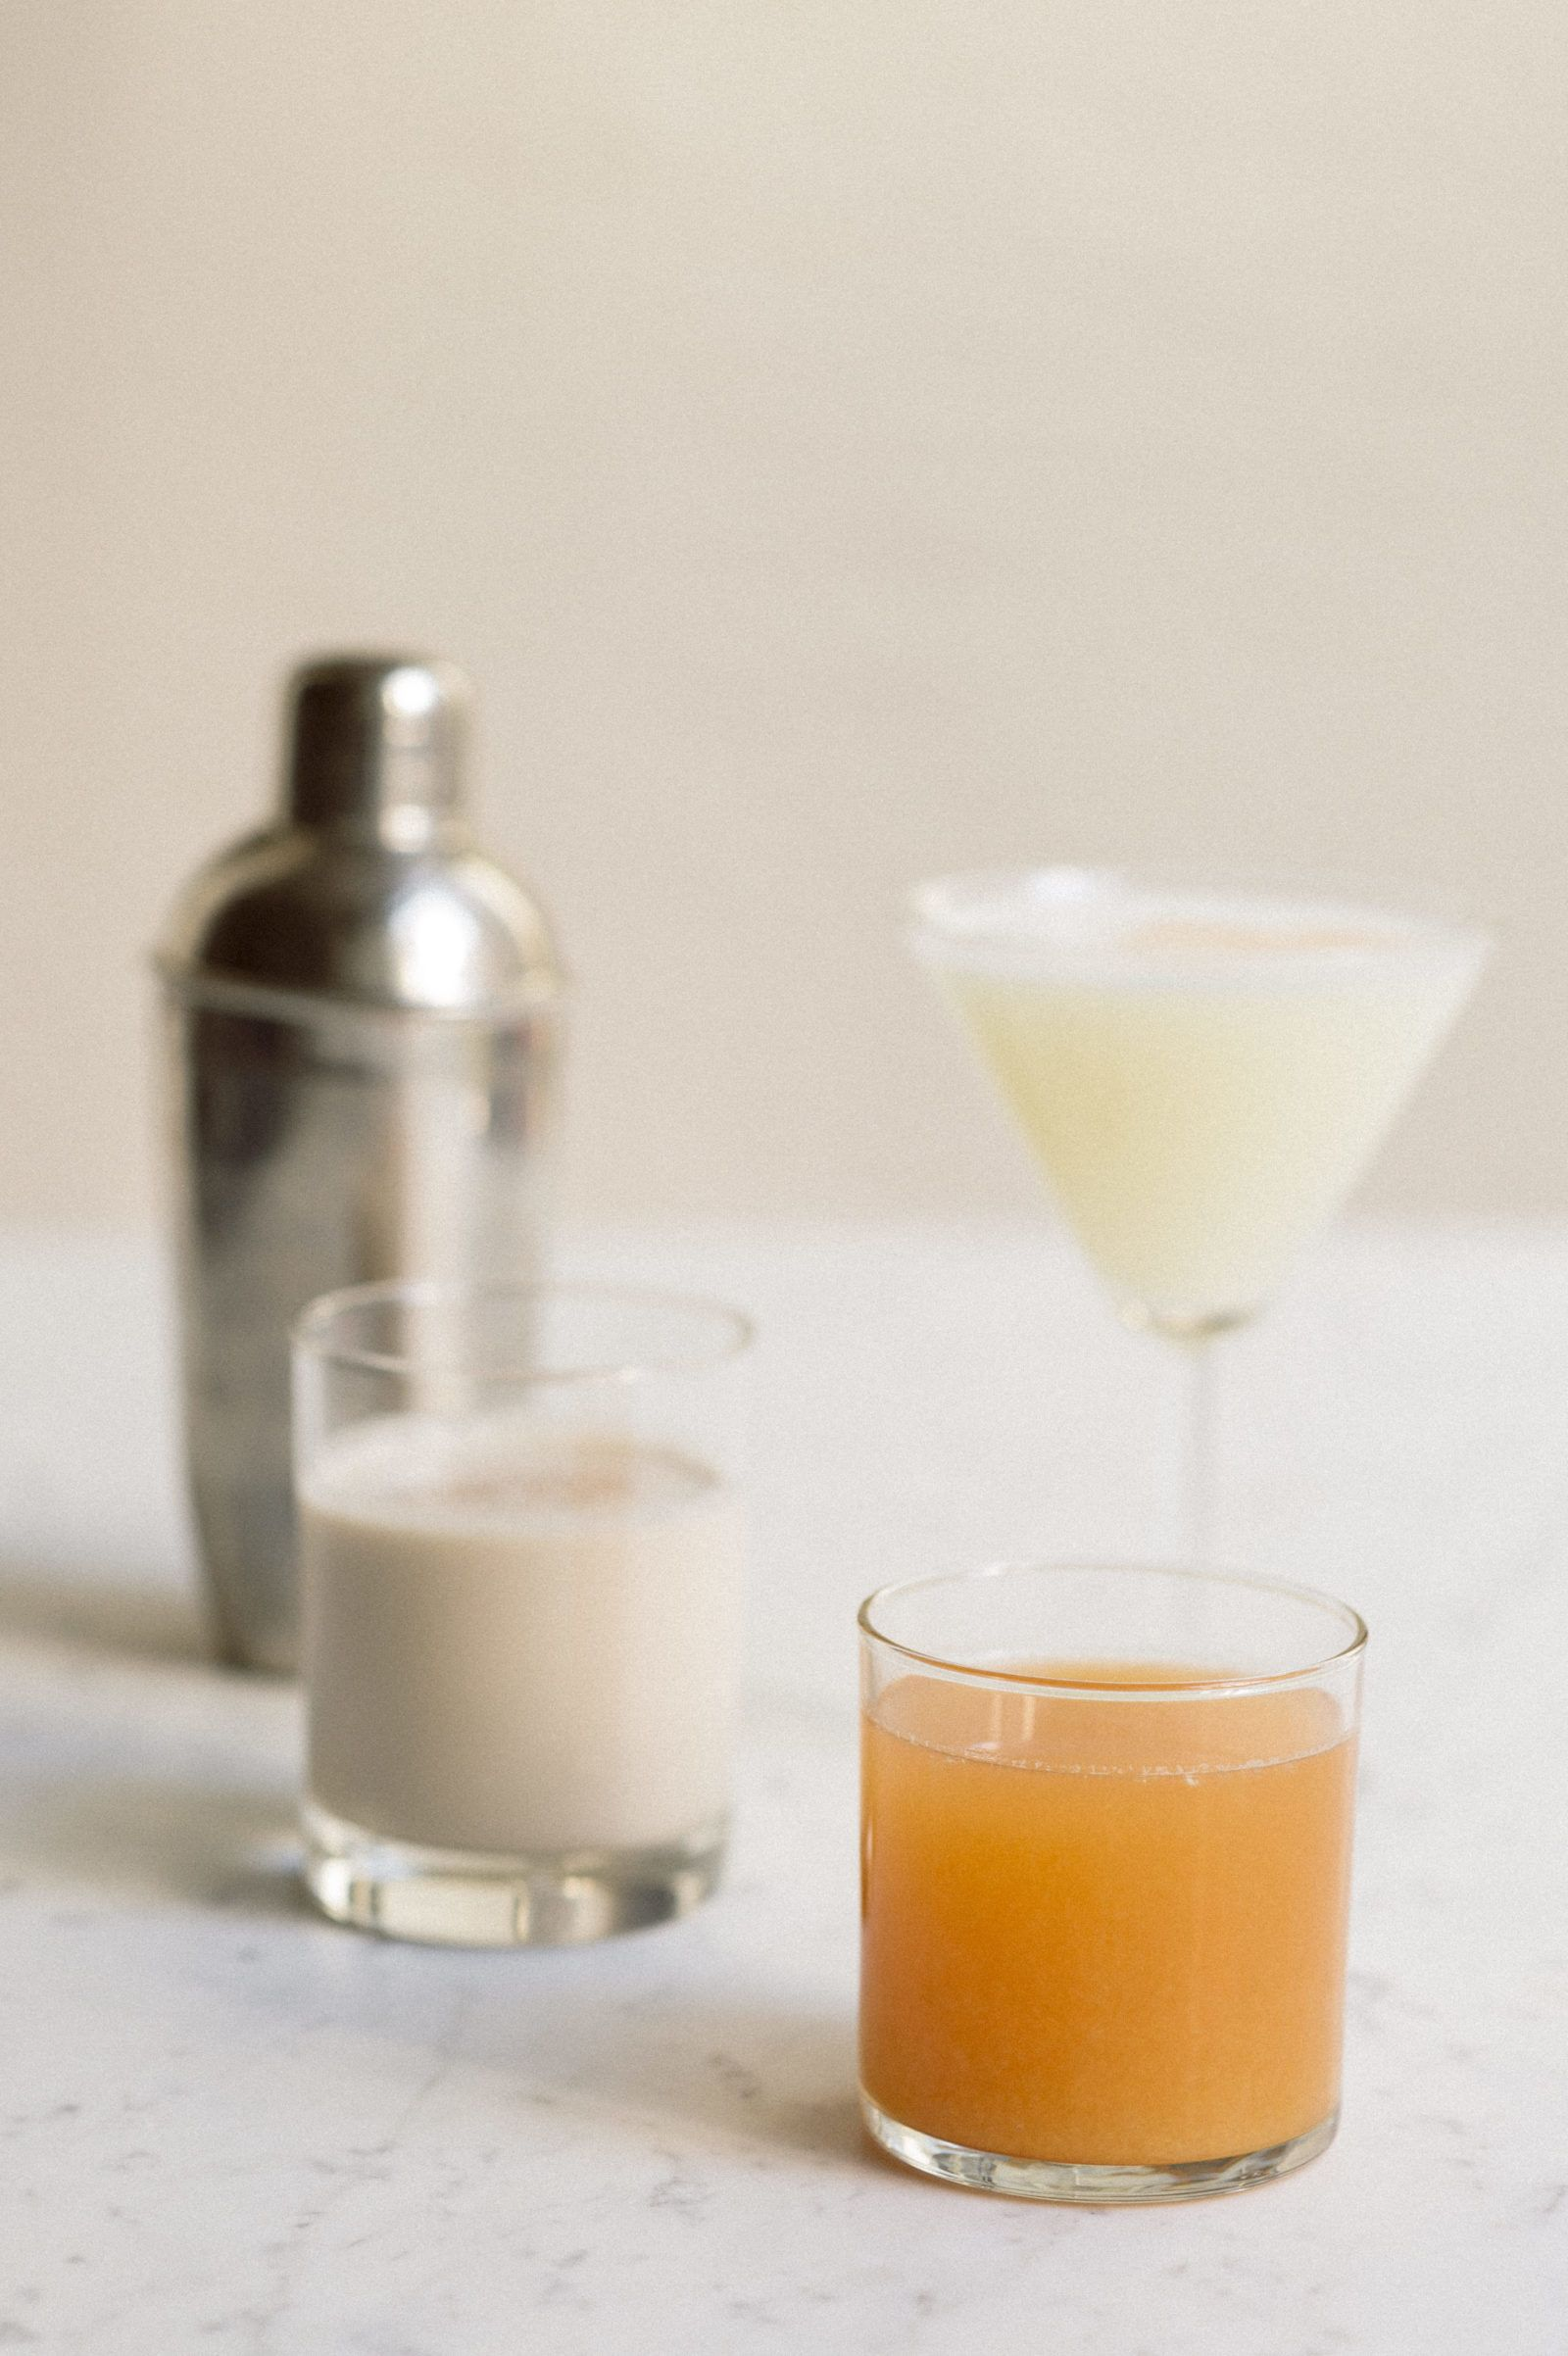 05ba48d0728e Tequila at High Noon from Christopher Kimball's Milk Street | Milk ...